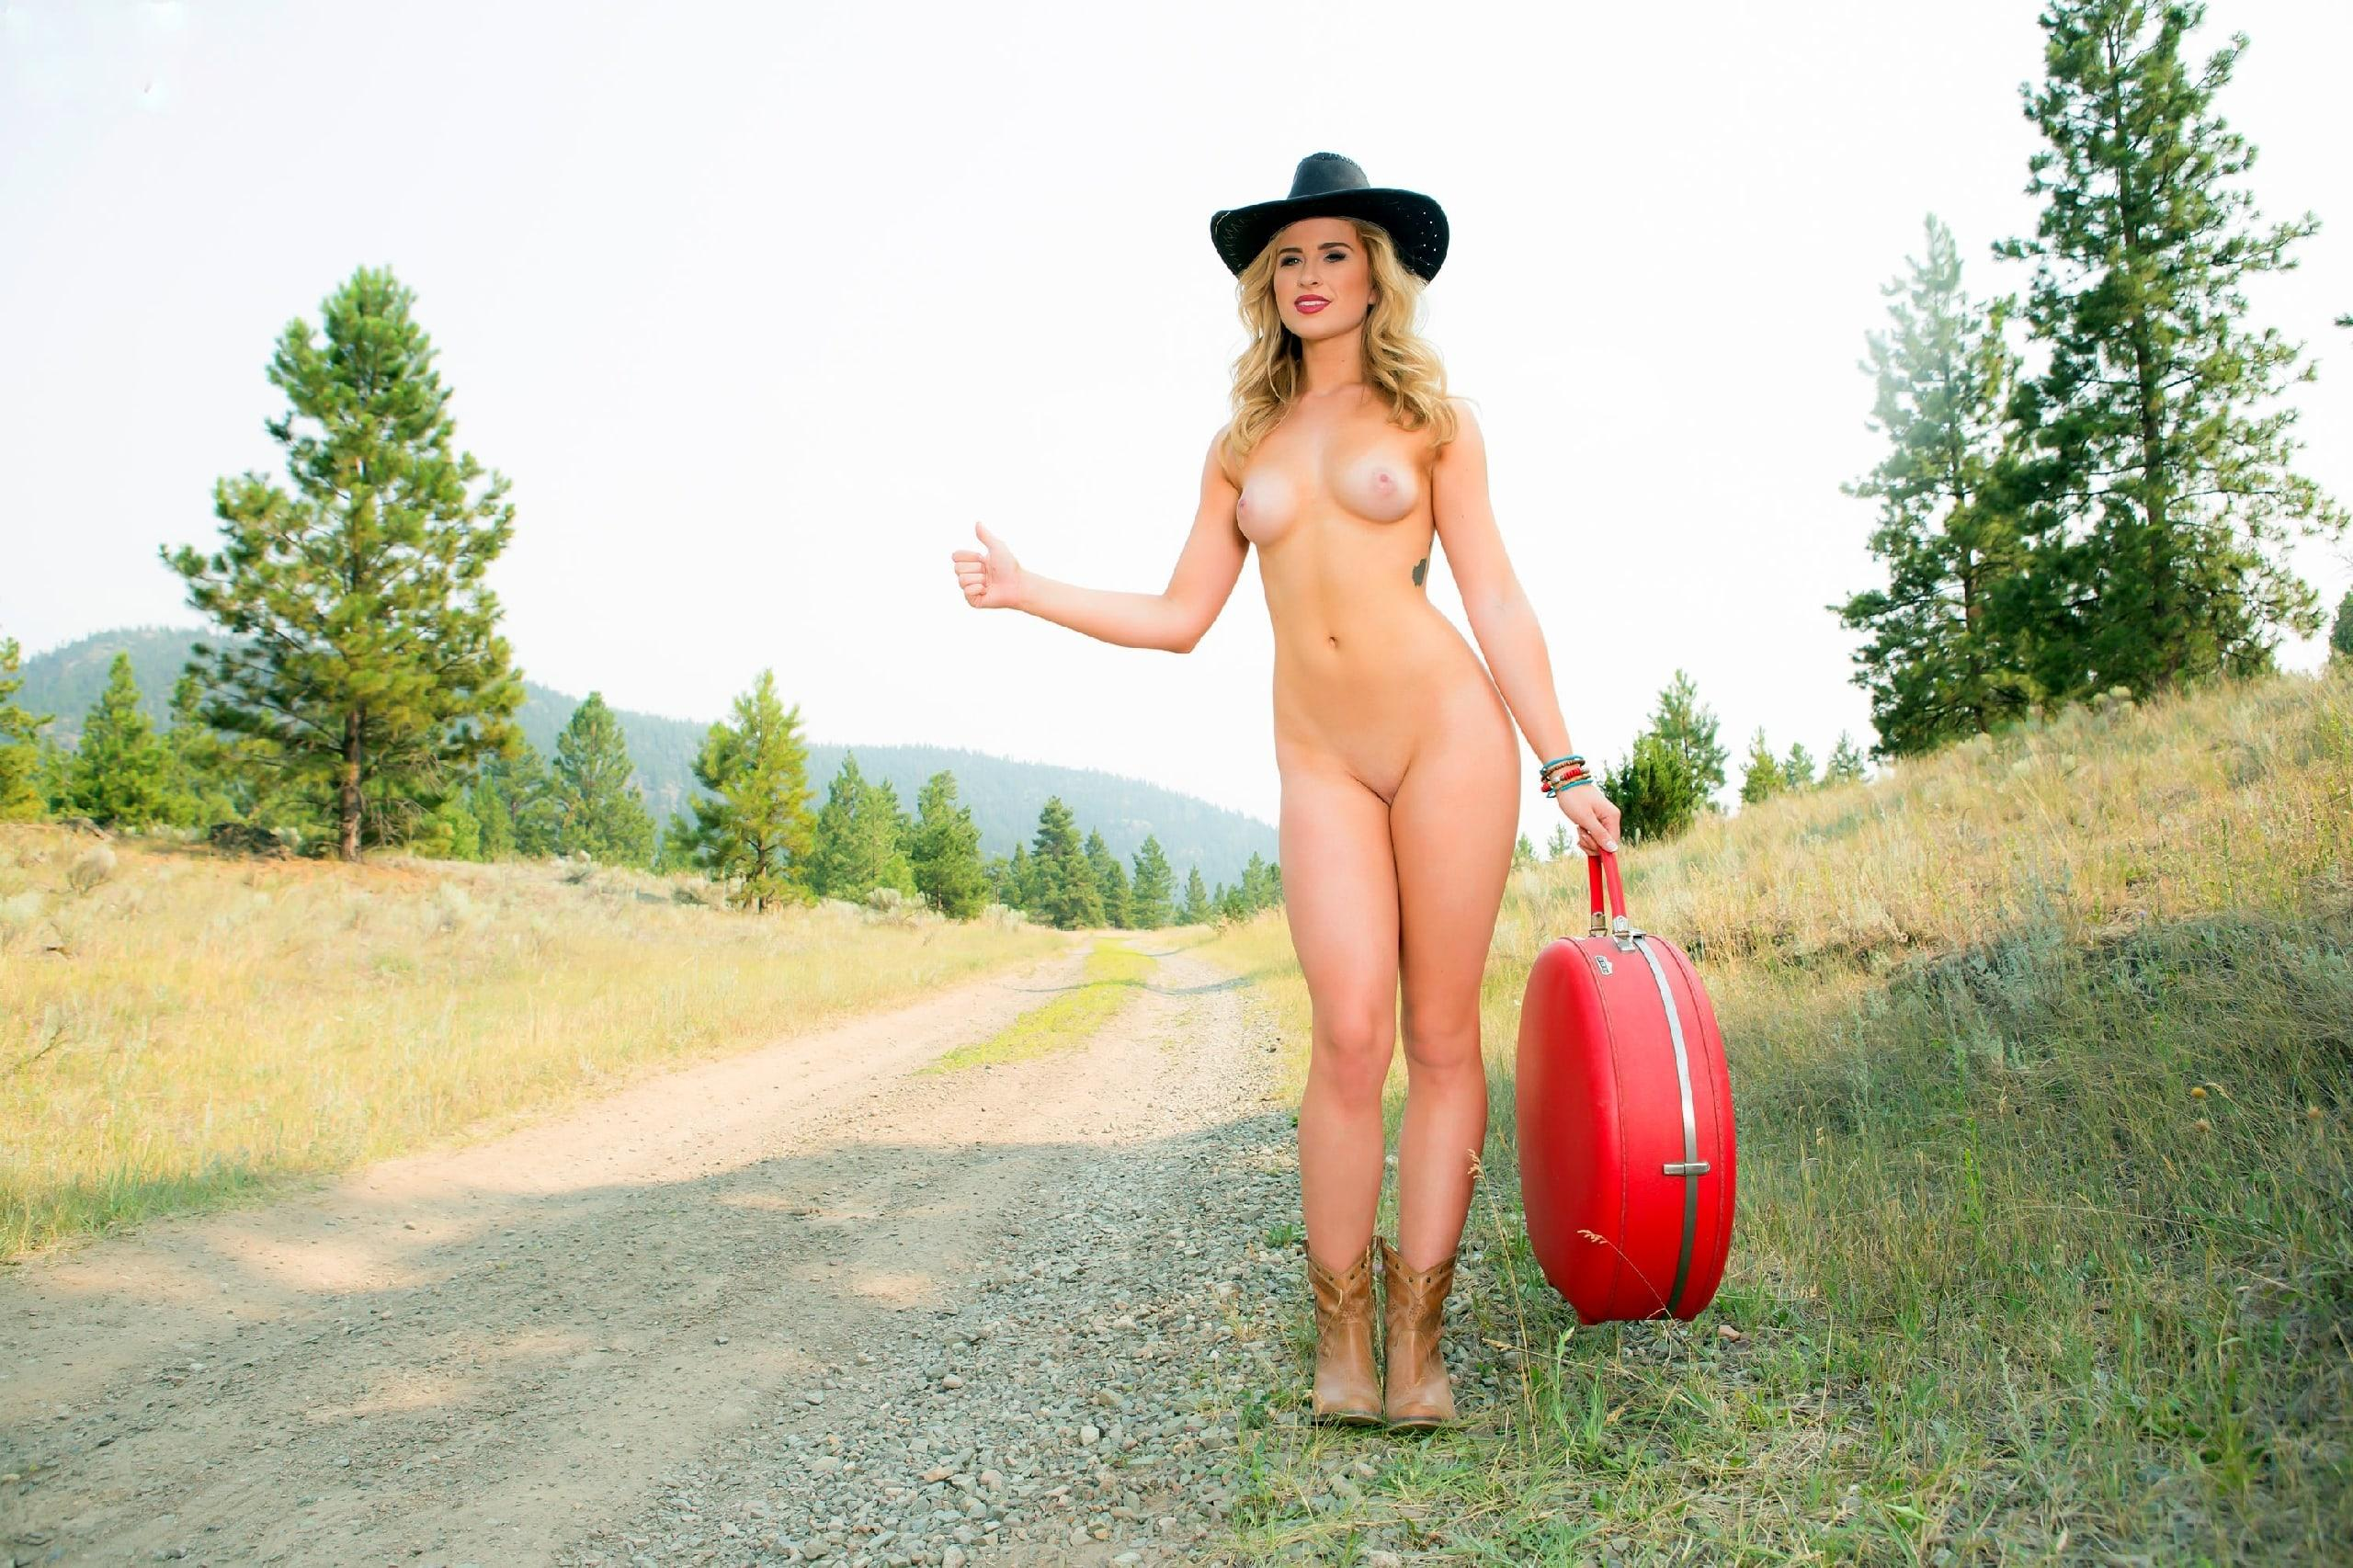 Hitch Hiker Porn Pics, Hitchhiking Sex Images, Hitch